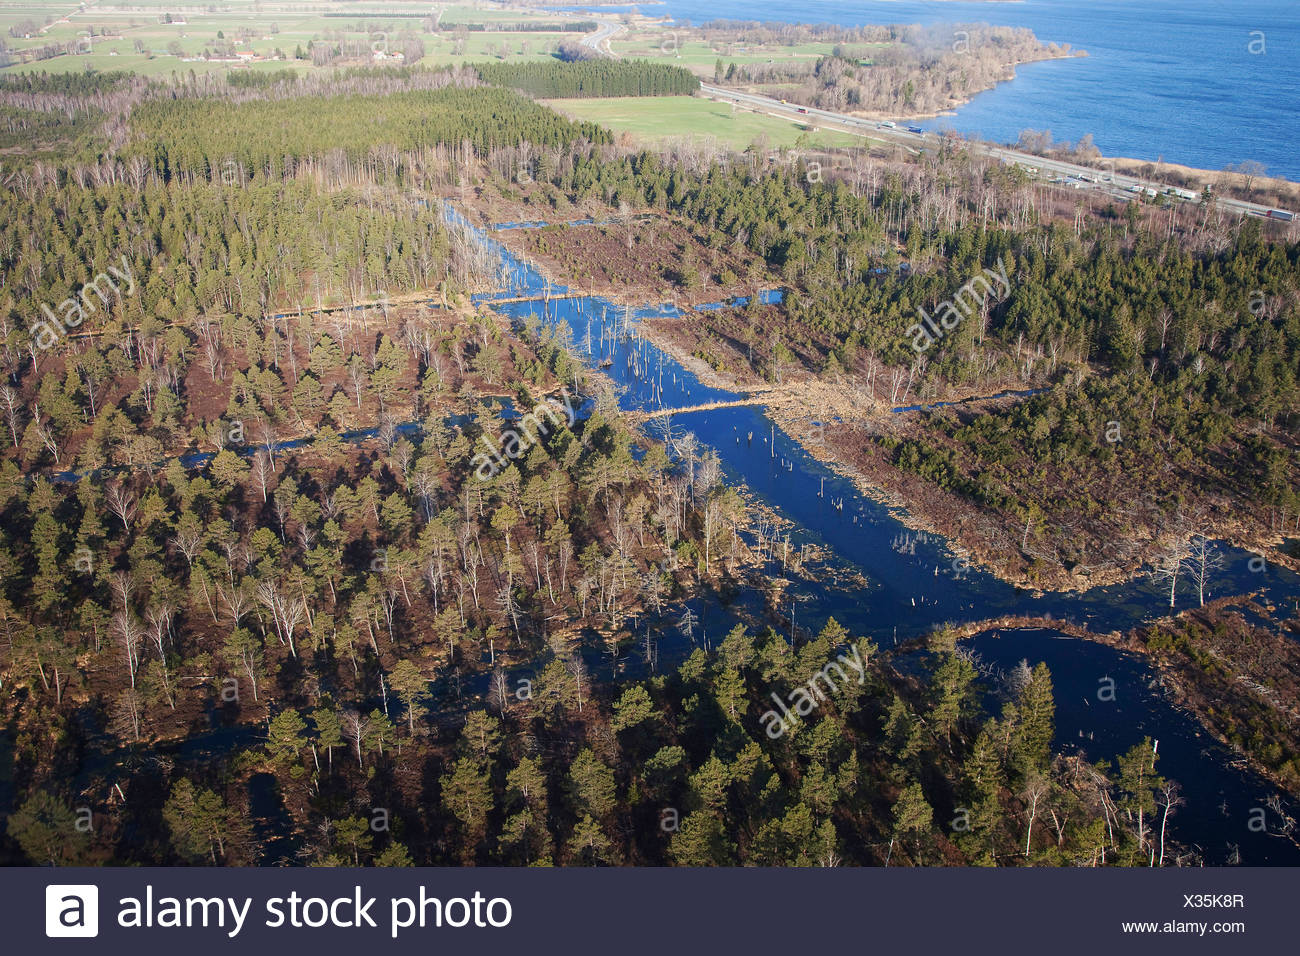 renaturation of a highmoor affected by peat-cutting, Germany, Bavaria, Chiemsee - Stock Image